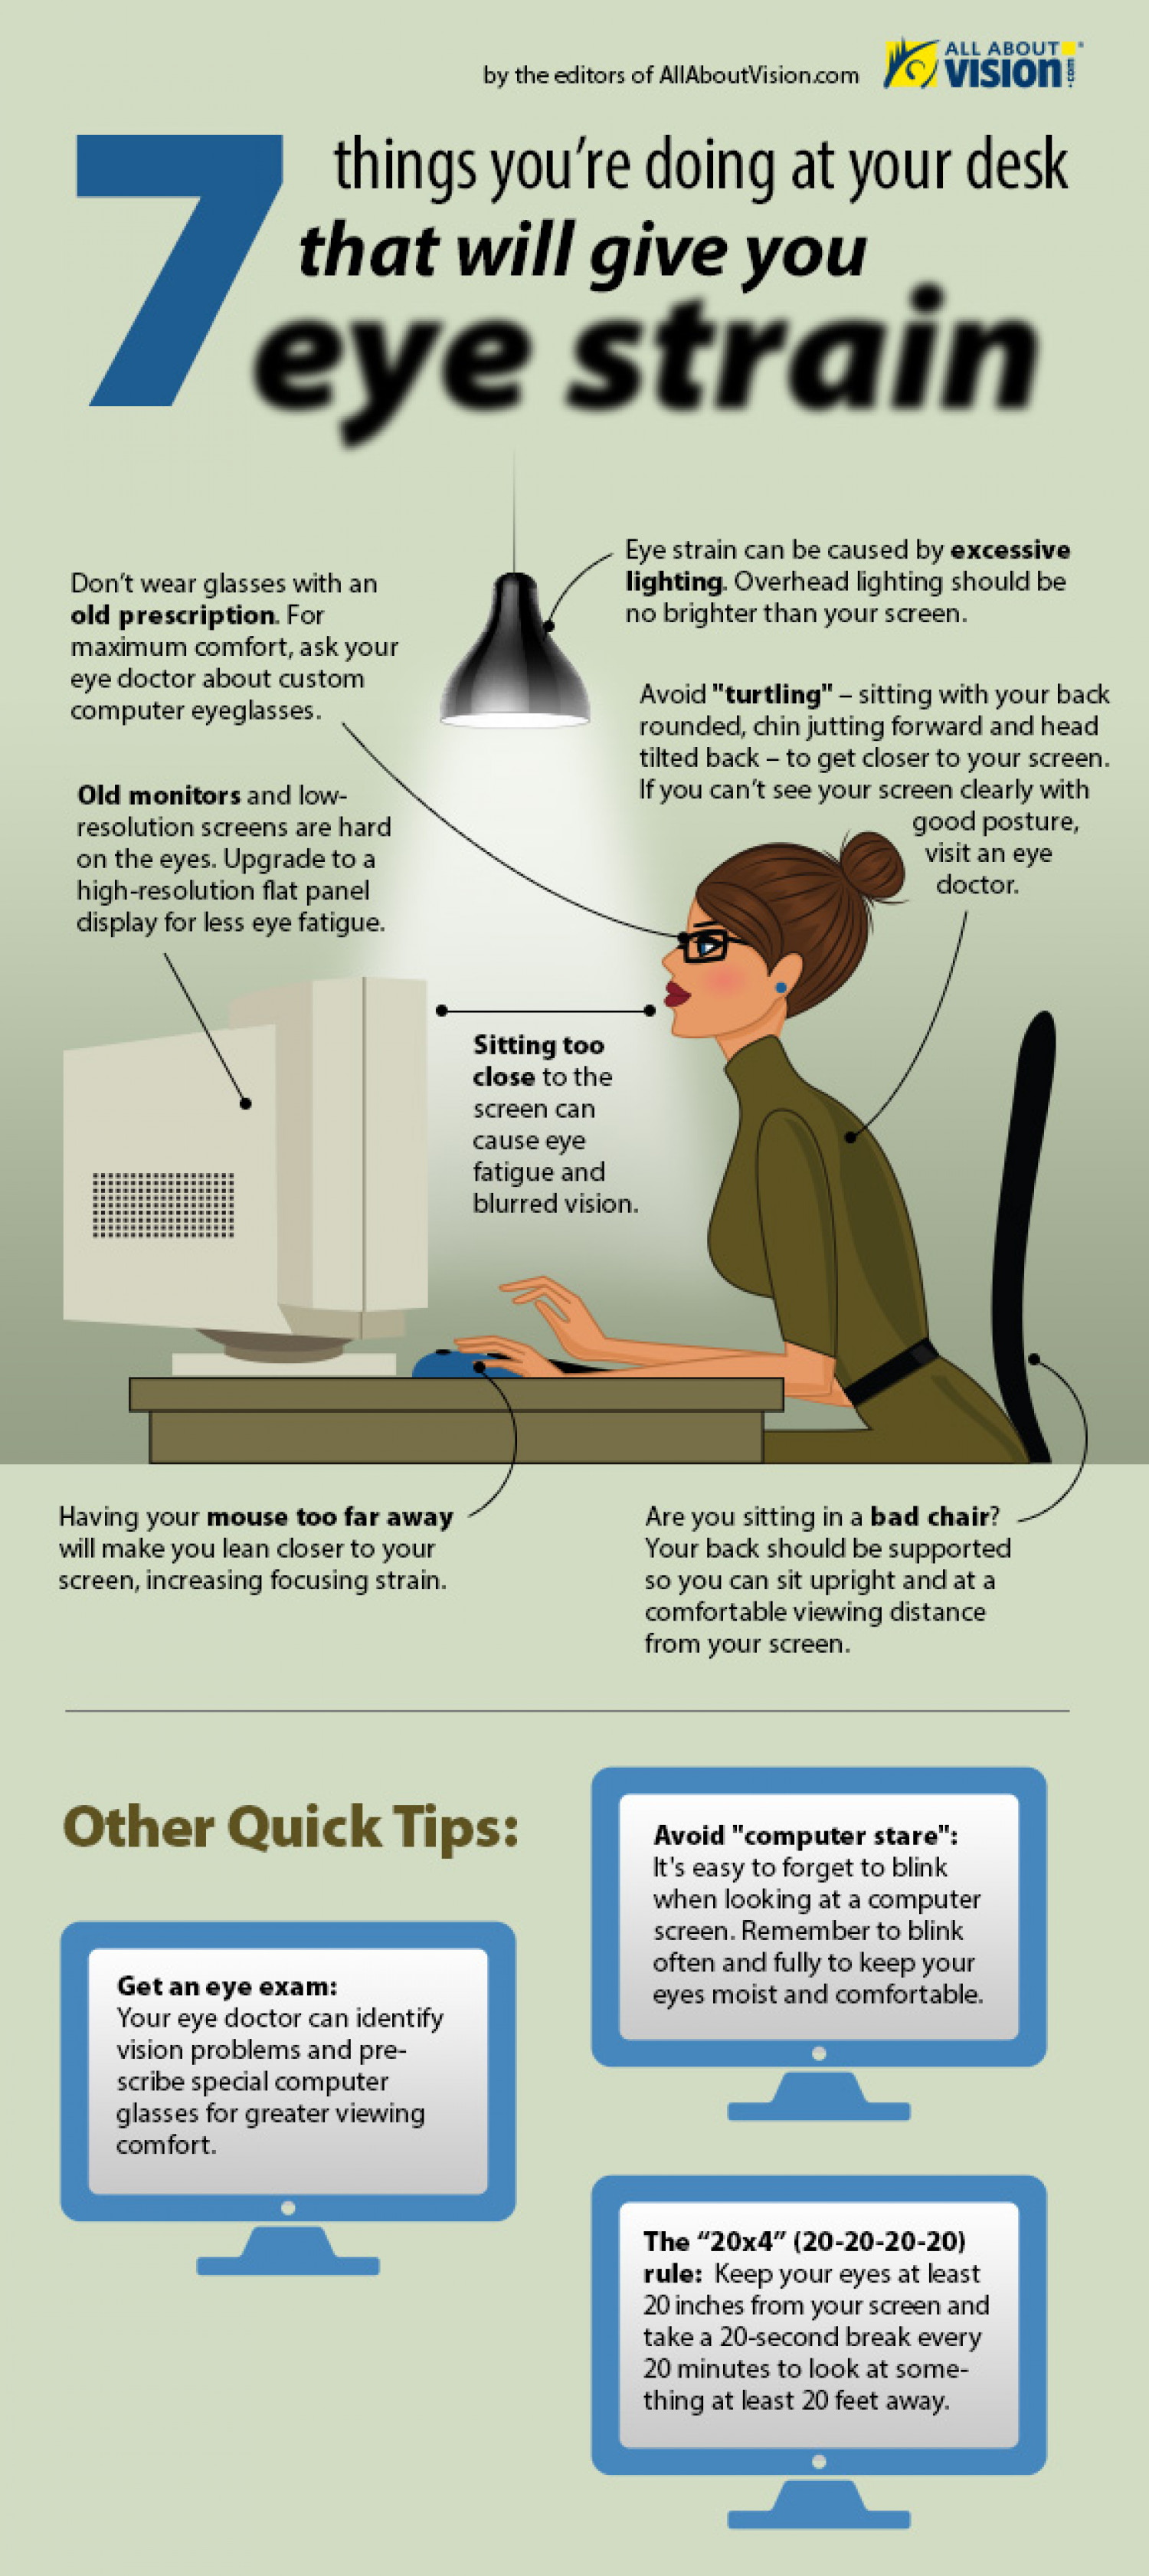 7 Things You're Doing at Your Desk That Give You Eye Strain Infographic